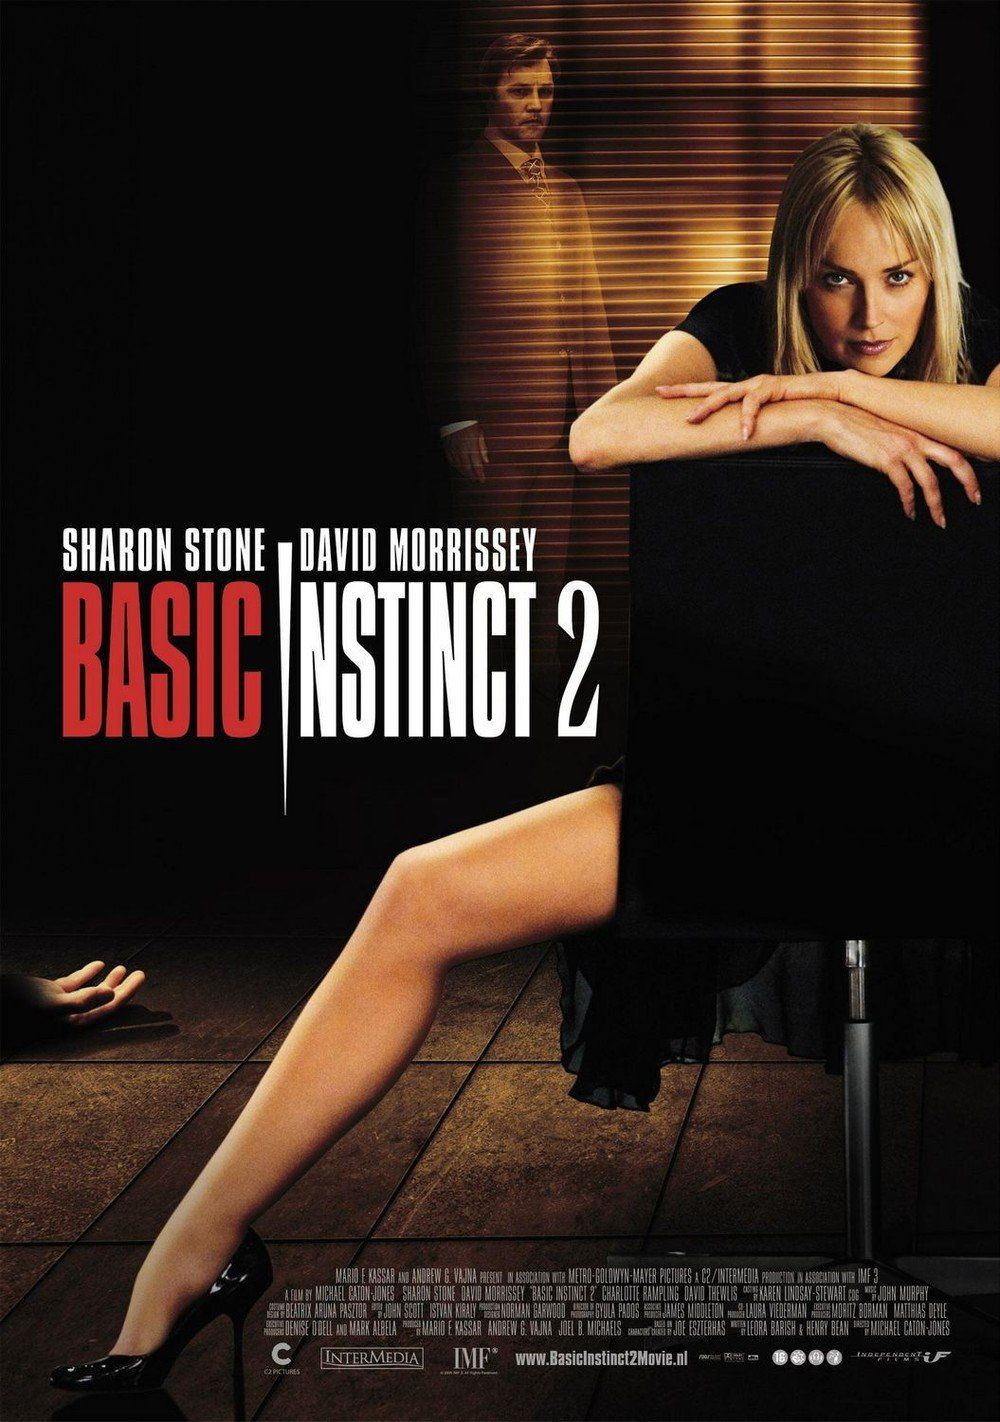 Basic Instinct 2 Full Movies Download Movies To Watch Sharon Stone Movie Creator